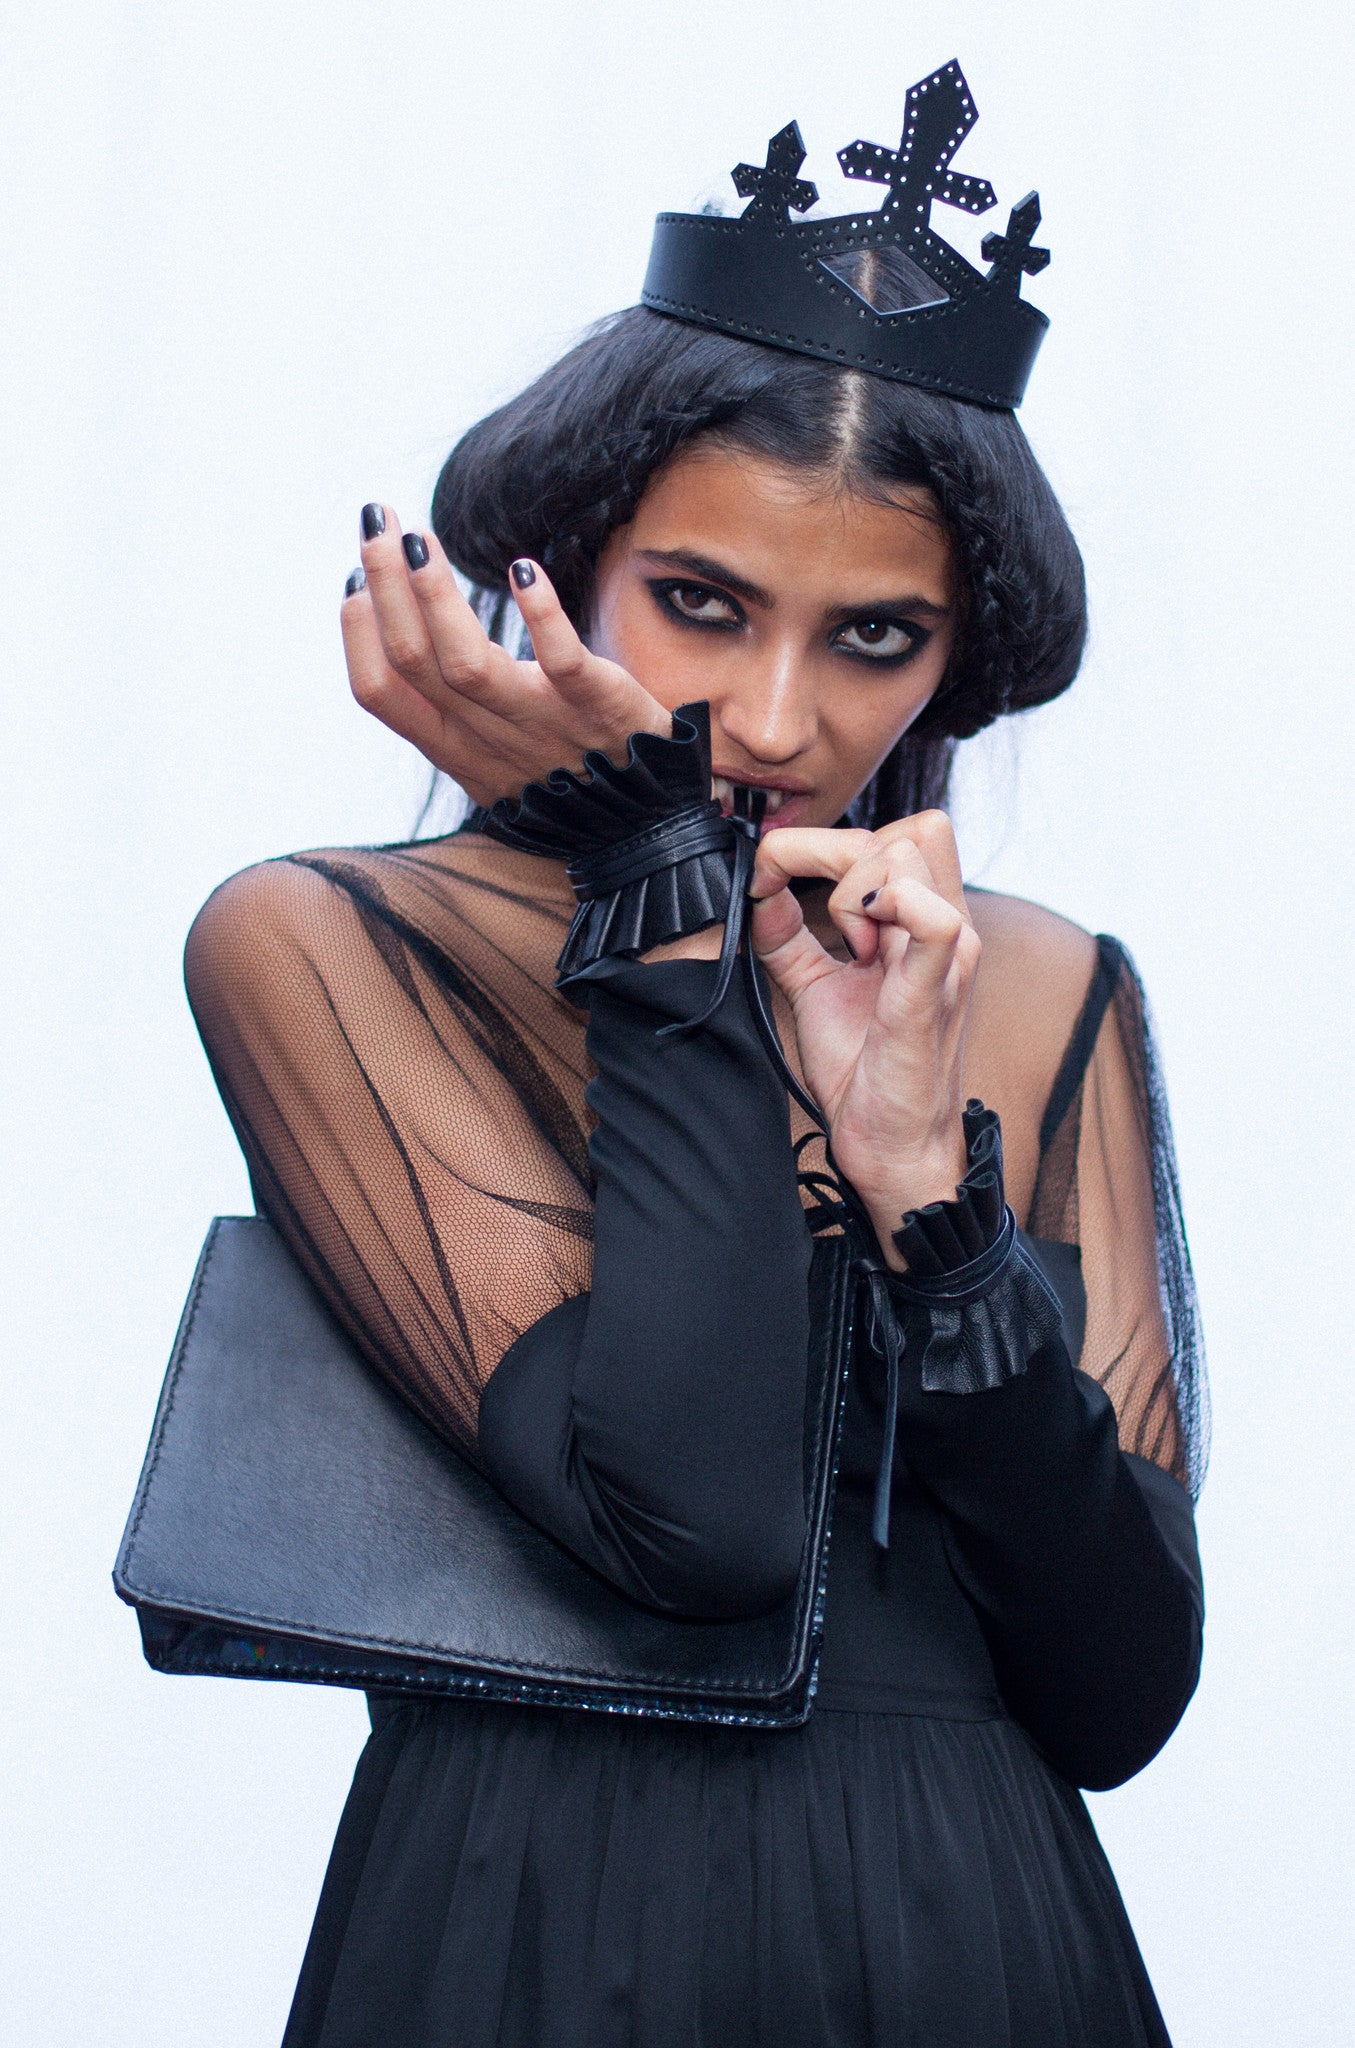 Karina T. IMG Model Edwardian Pleated Black Leather Wrist Cuffs Wendy Nichol Designer Handmade in NYC Victorian Gothic Leather Suede Bow Pleated Cuffs Saints of the Zodiac Fashion Show SS14